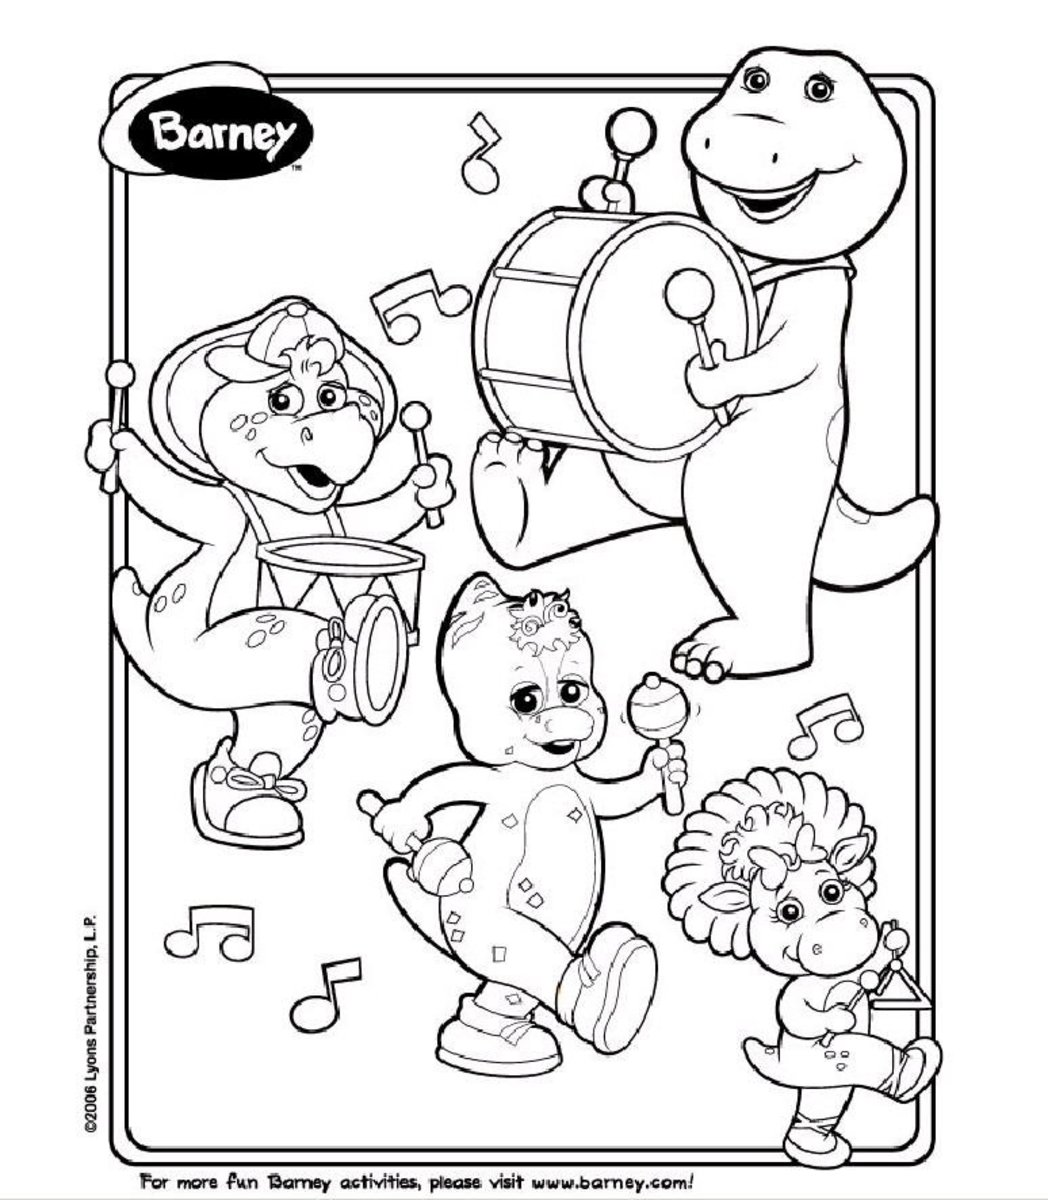 Free Printable Barney Coloring Pages | HubPages